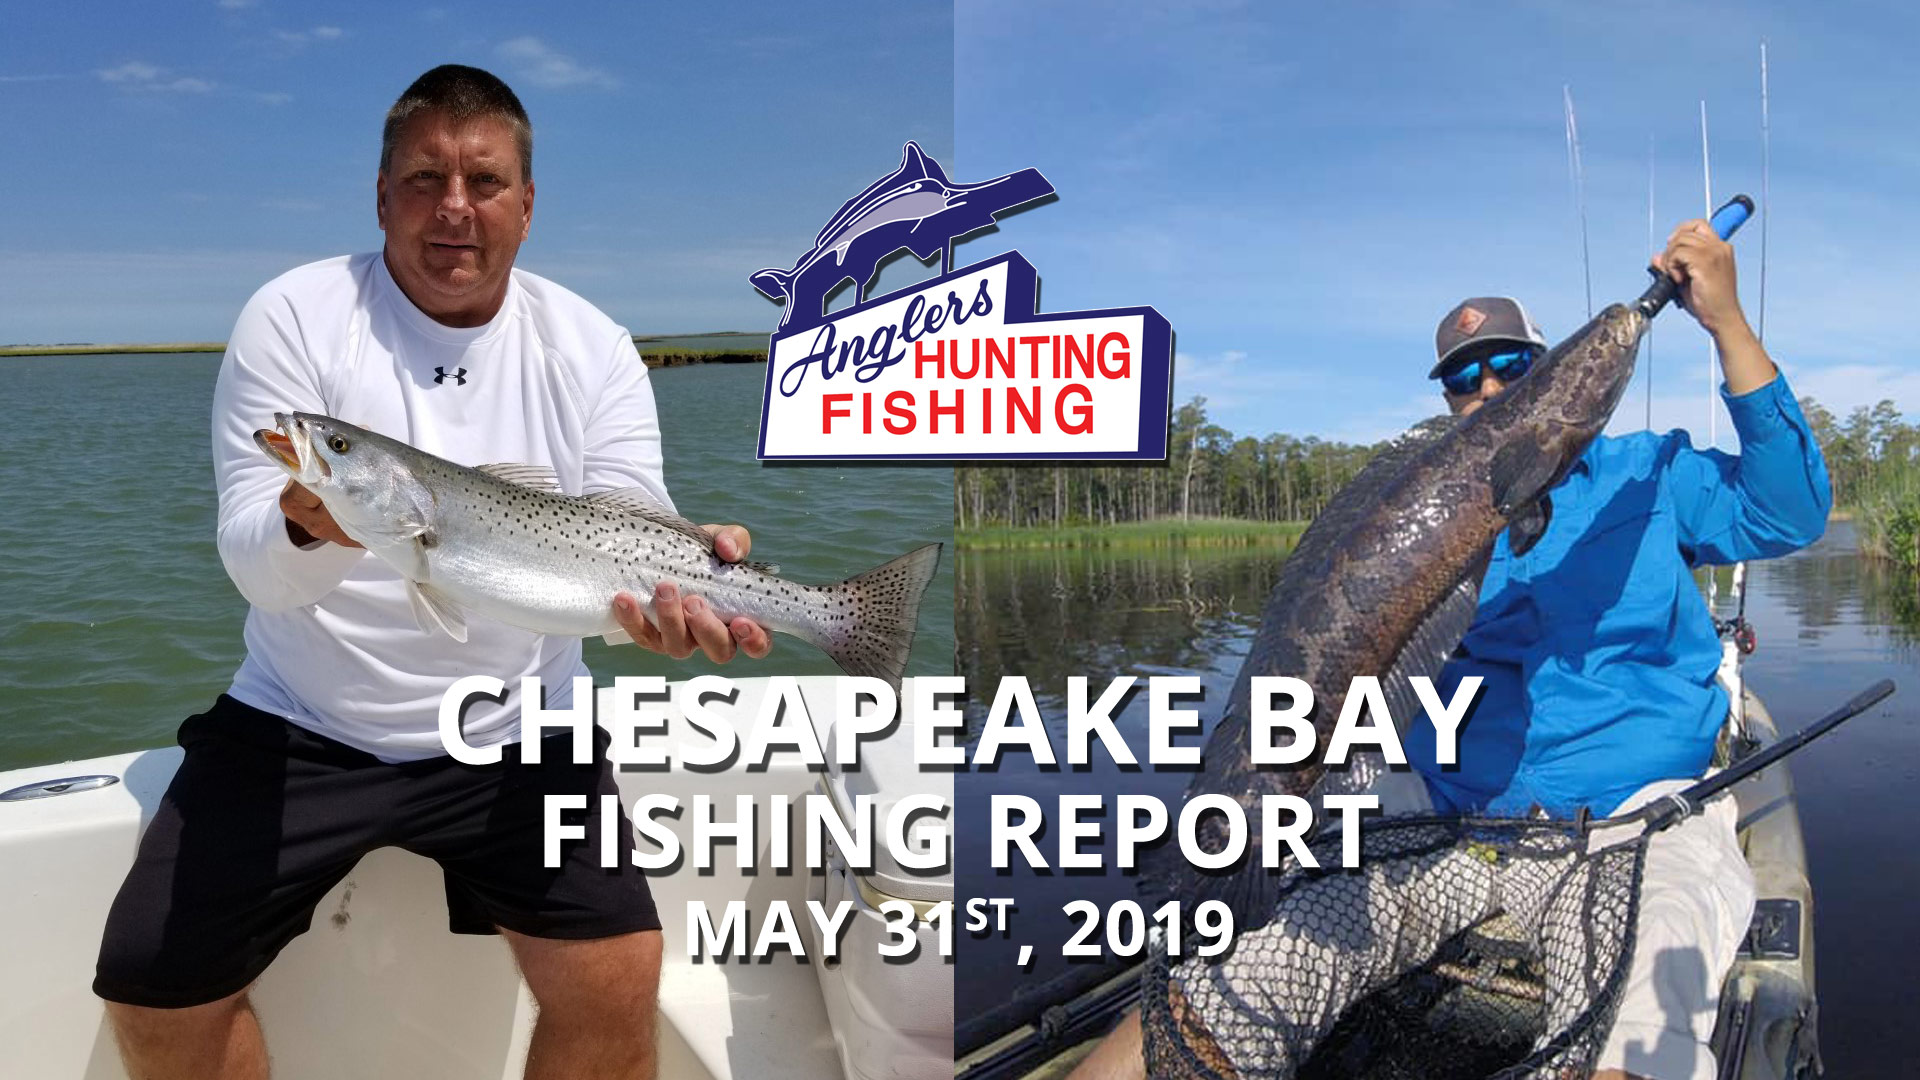 Chesapeake Bay Fishing Report - May 31st, 2019